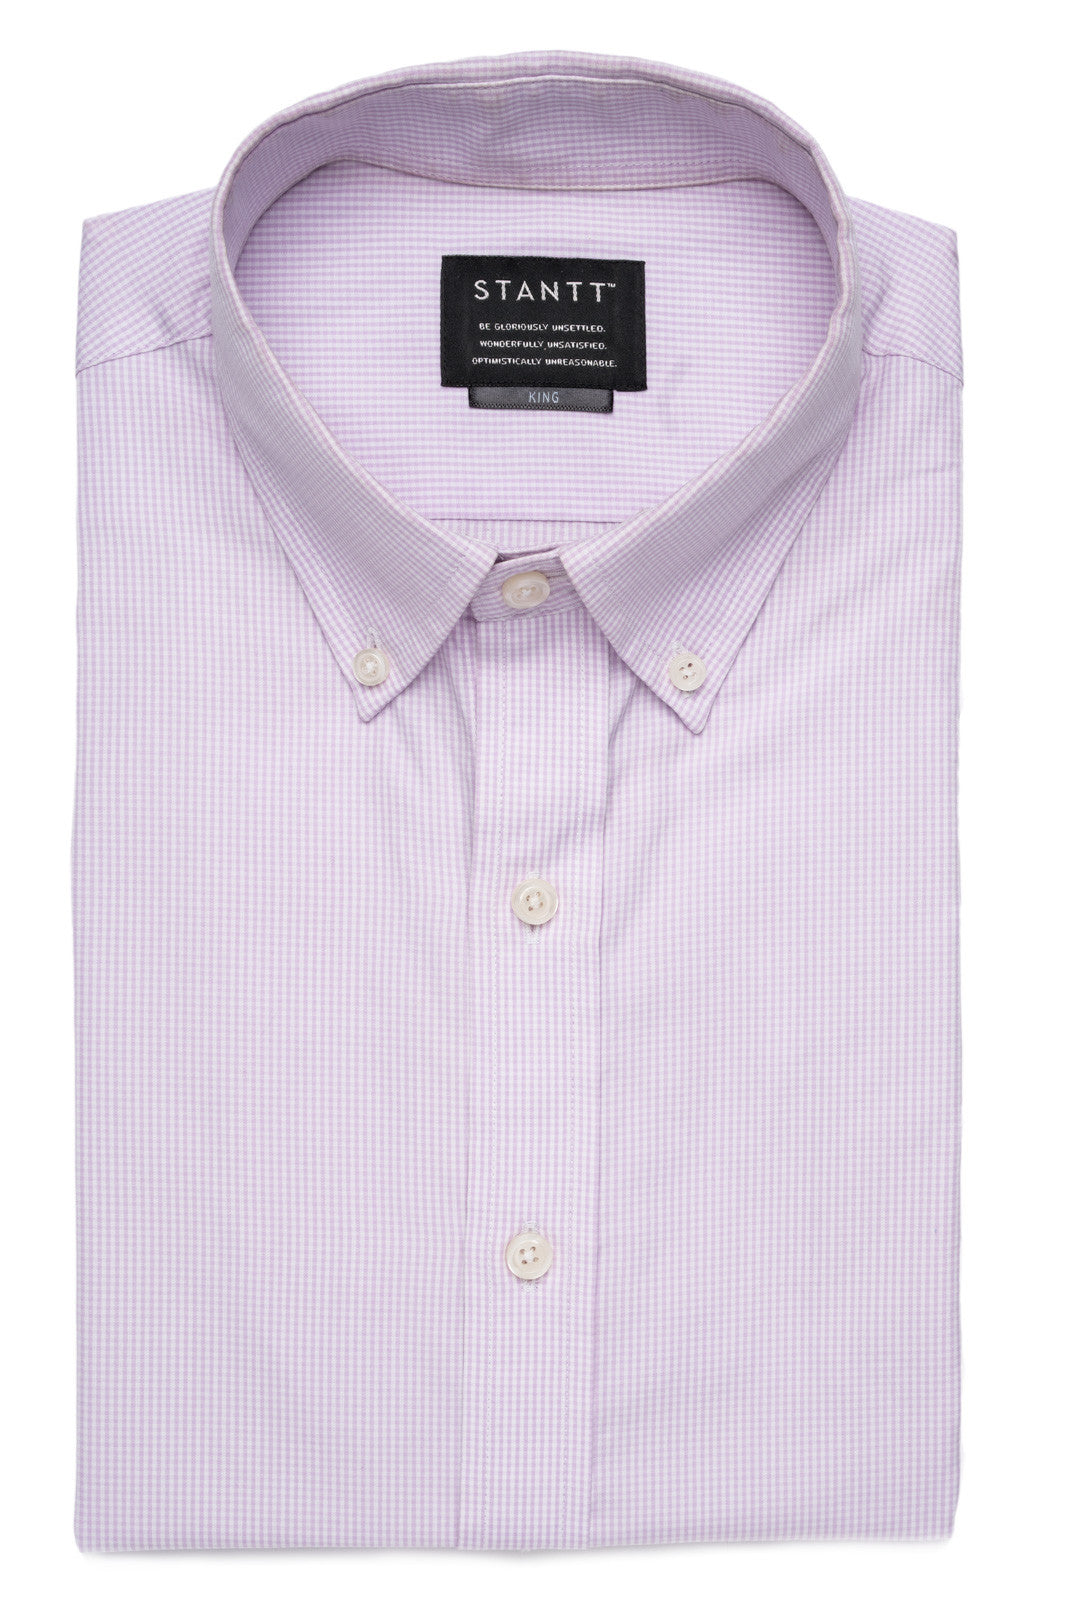 Lavender Micro Check: Semi-Spread Collar, French Cuff